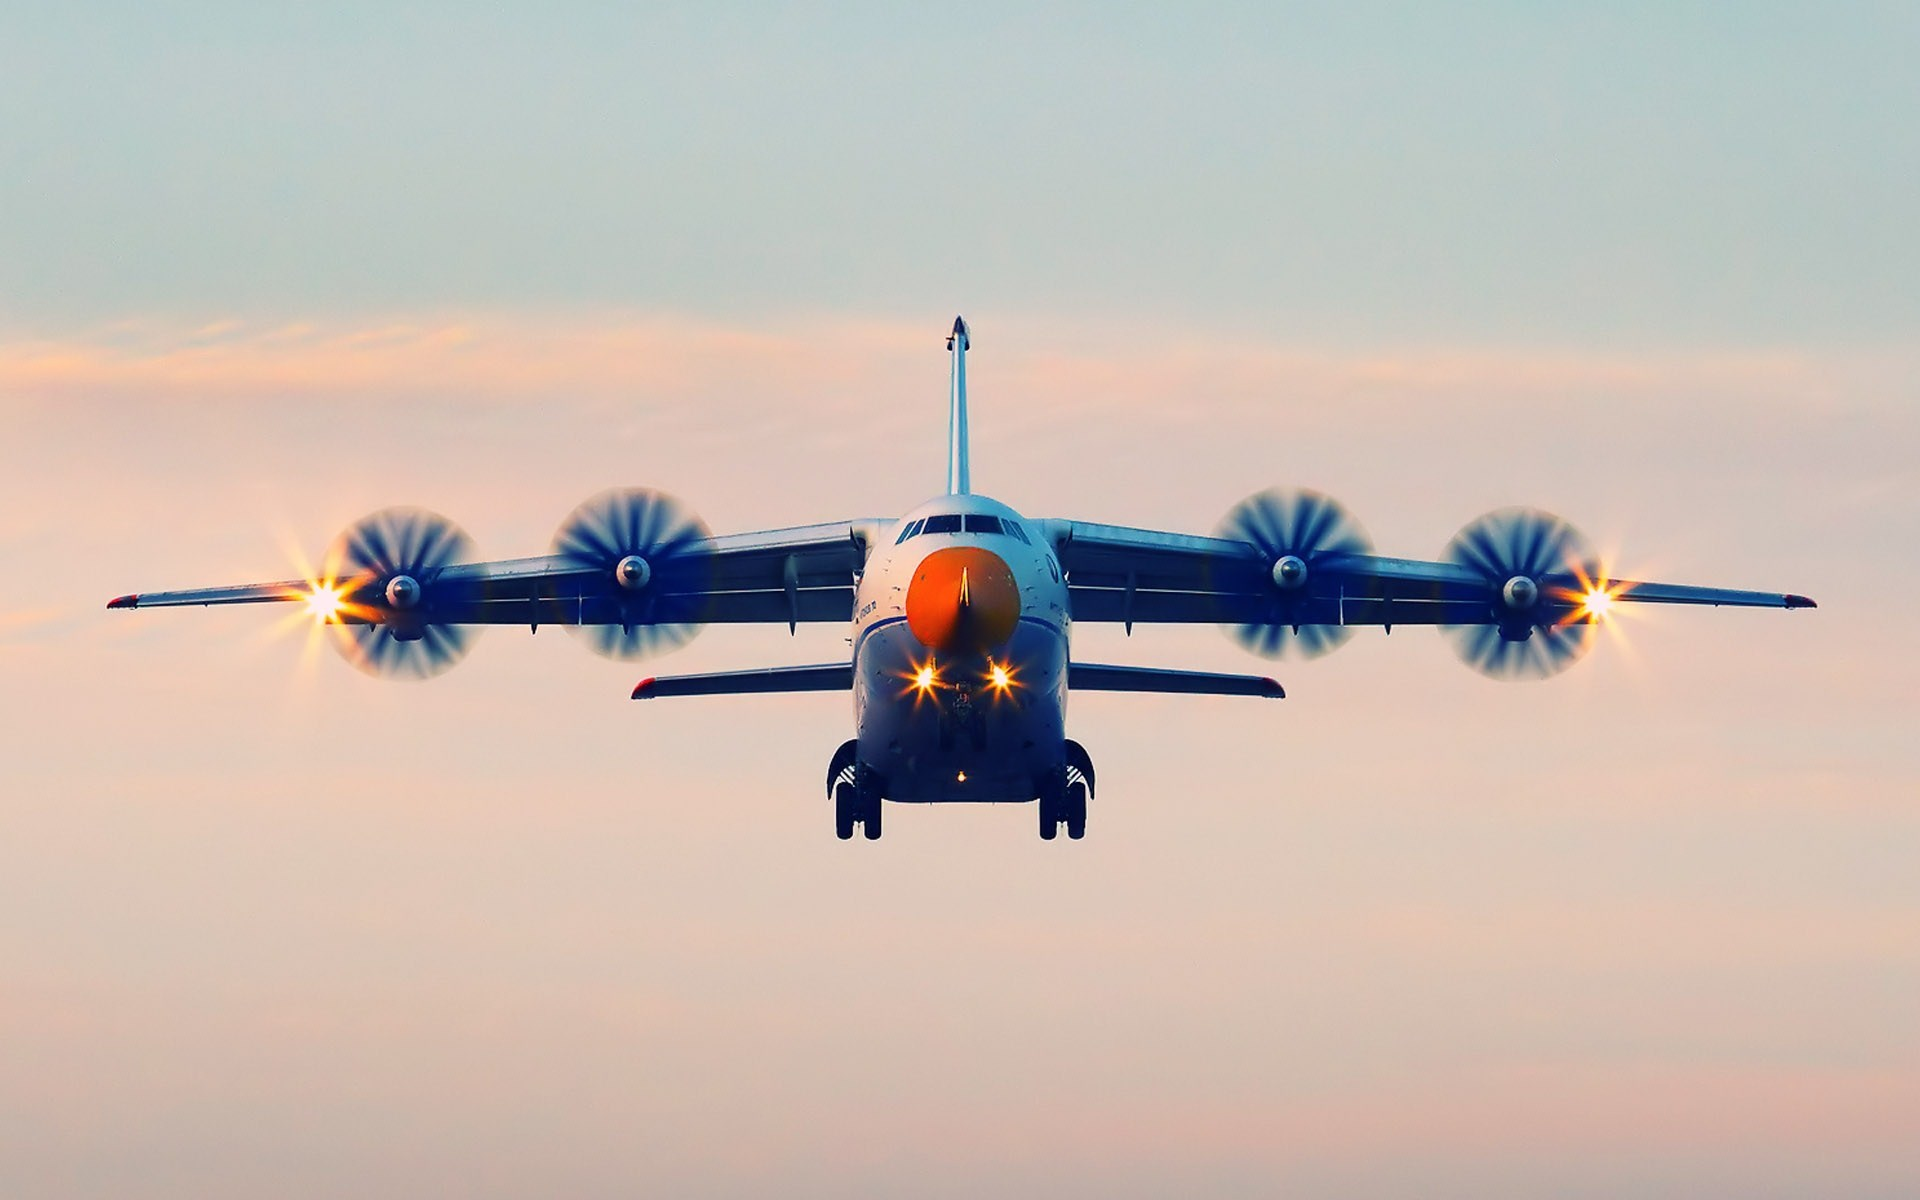 Antonov An-70 Four Engine Transport Aircraft Photo